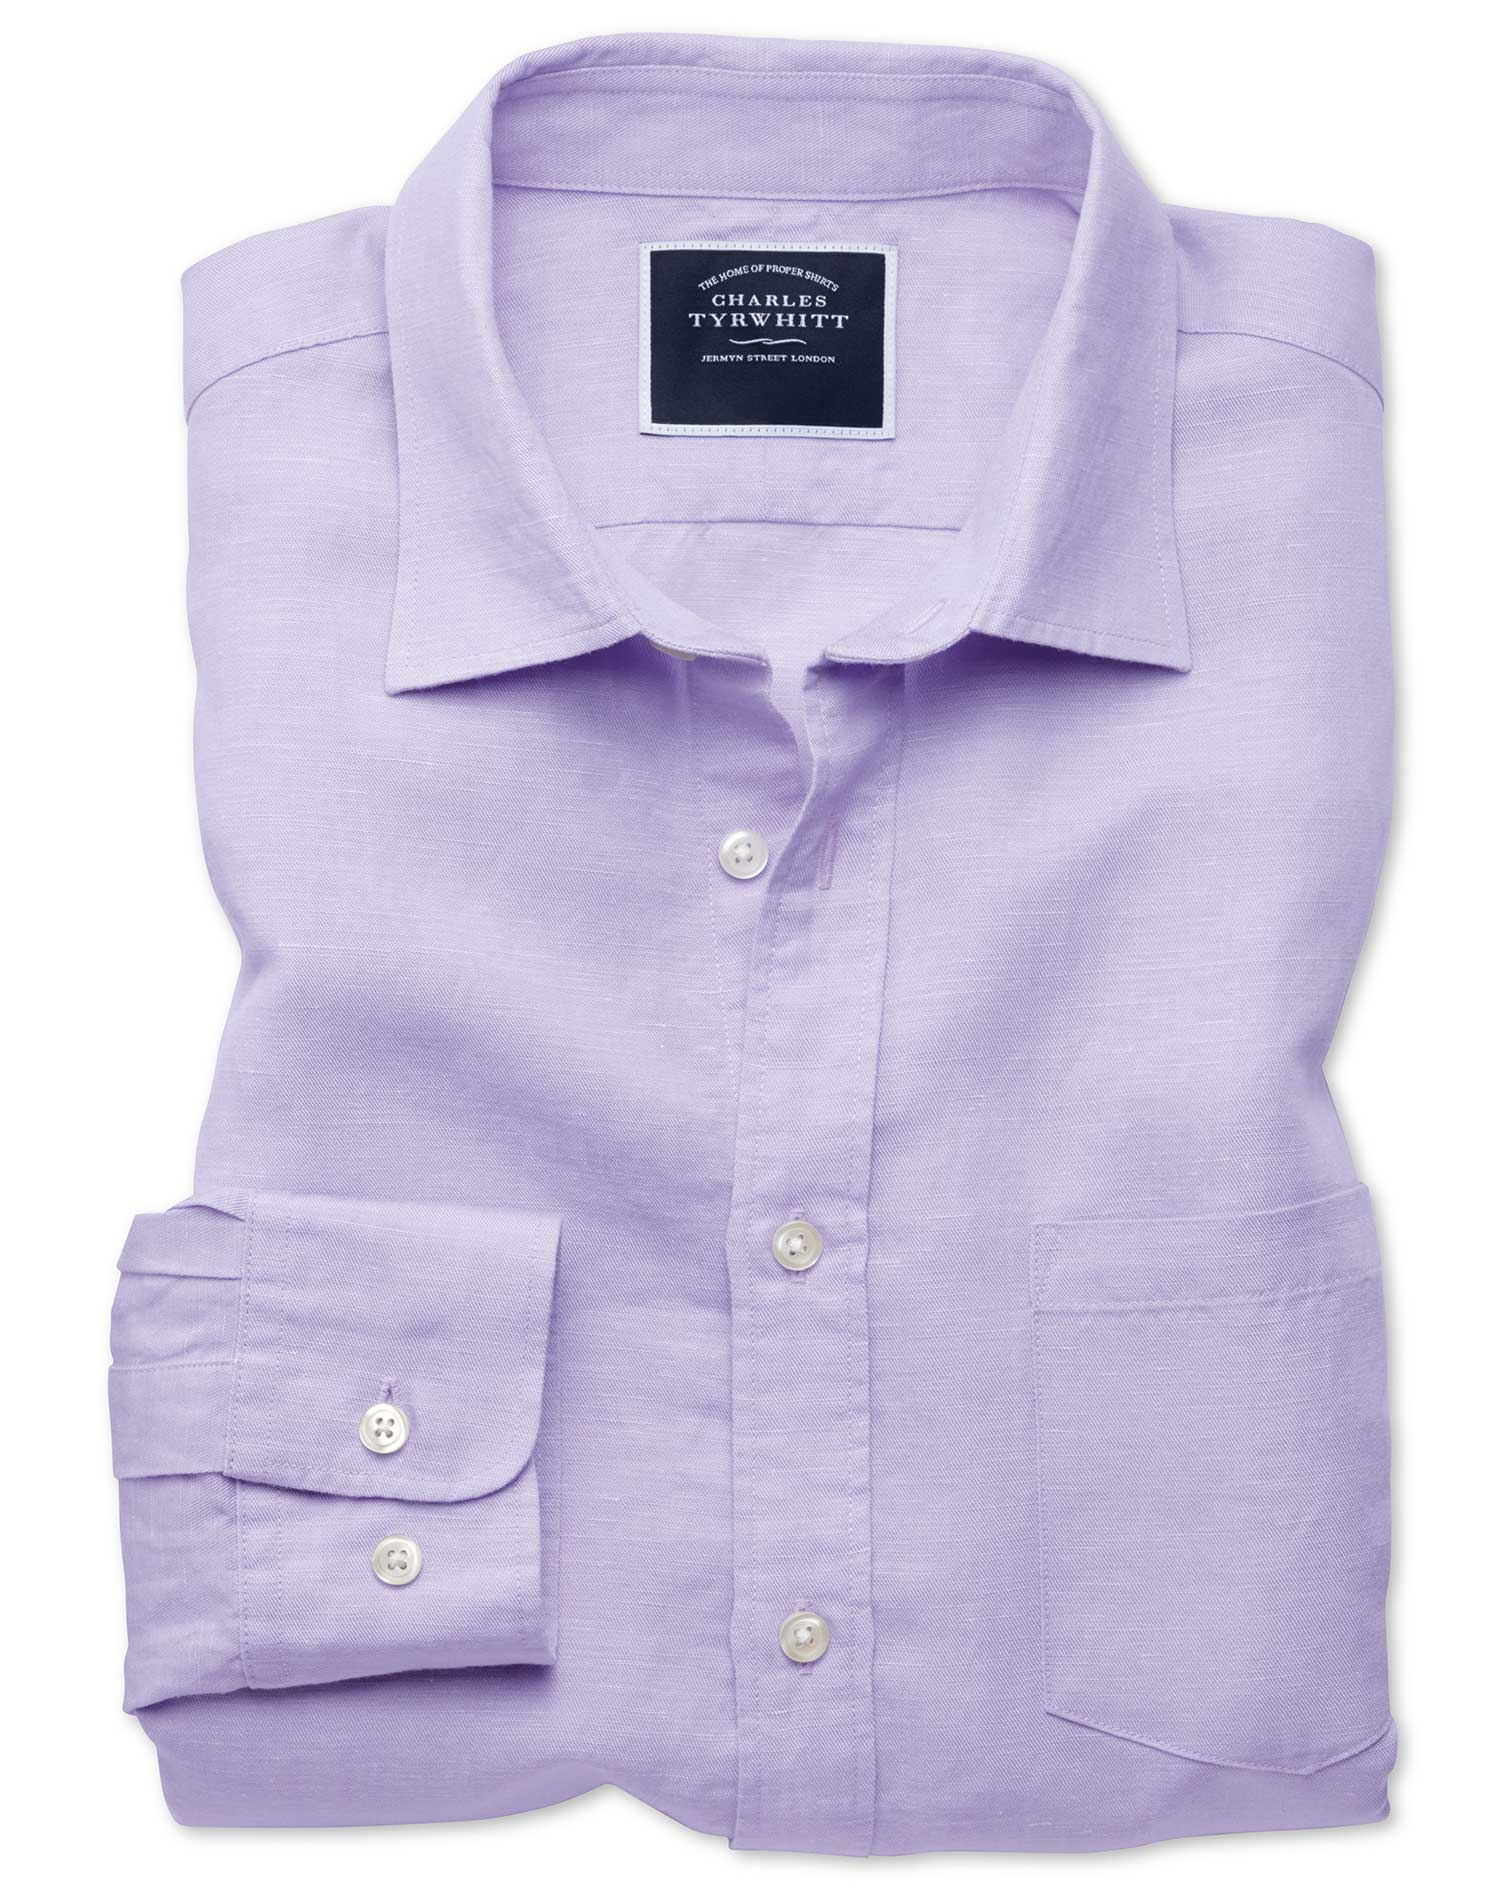 Slim Fit Lilac Tencel™ With Linen Shirt Single Cuff Size Medium by Charles Tyrwhitt